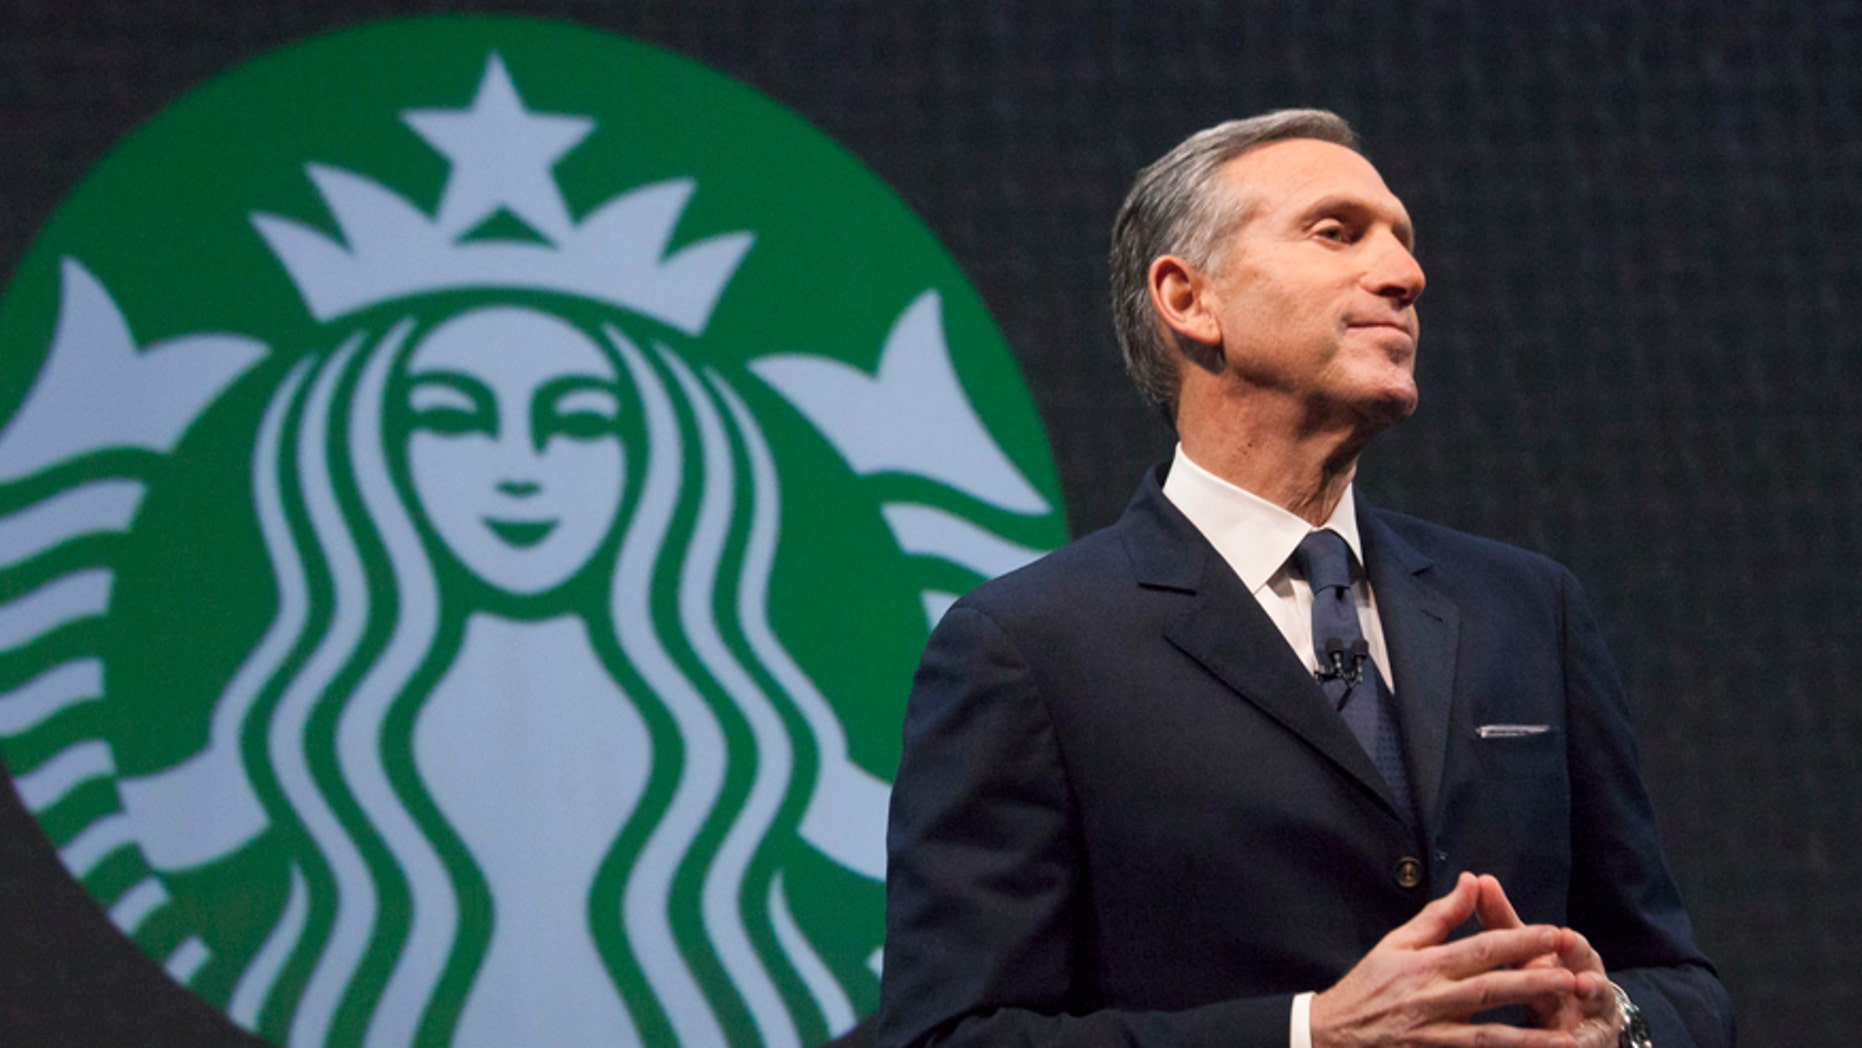 Starbucks Chief Executive Howard Schultz speaks during the company's annual shareholder's meeting in Seattle, Washington, on March 18, 2015.